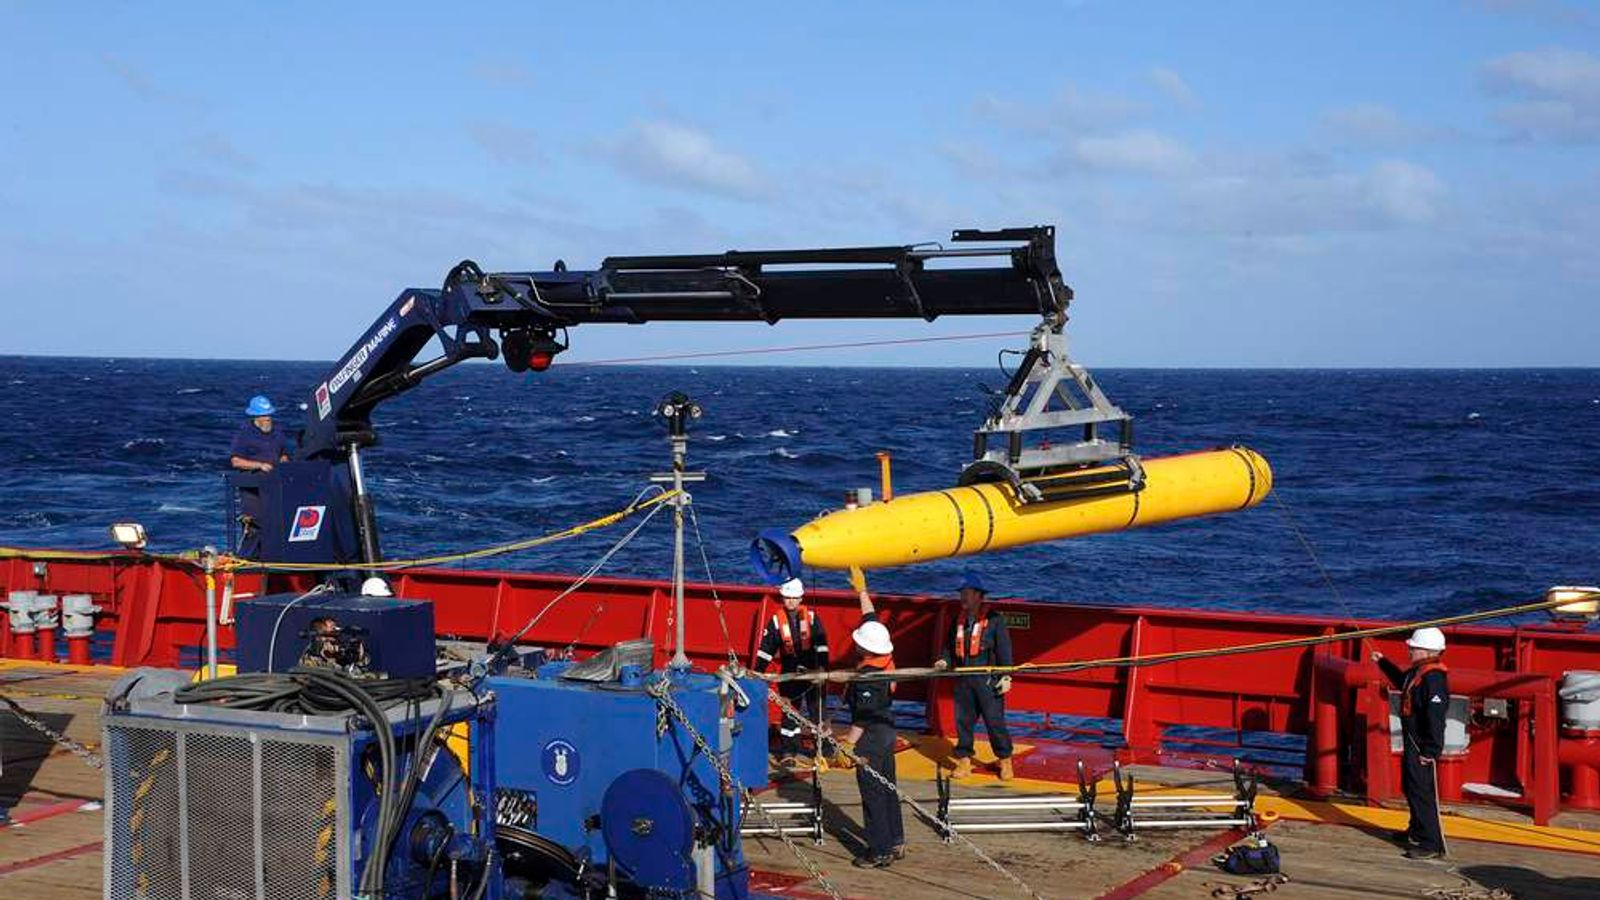 The Bluefin 21, the Artemis AUV, is hoisted back on board the Australian Defence Vessel Ocean Shield after a buoyancy test in the southern Indian Ocean during the continuing search for missing Malaysian Airlines flight MH370